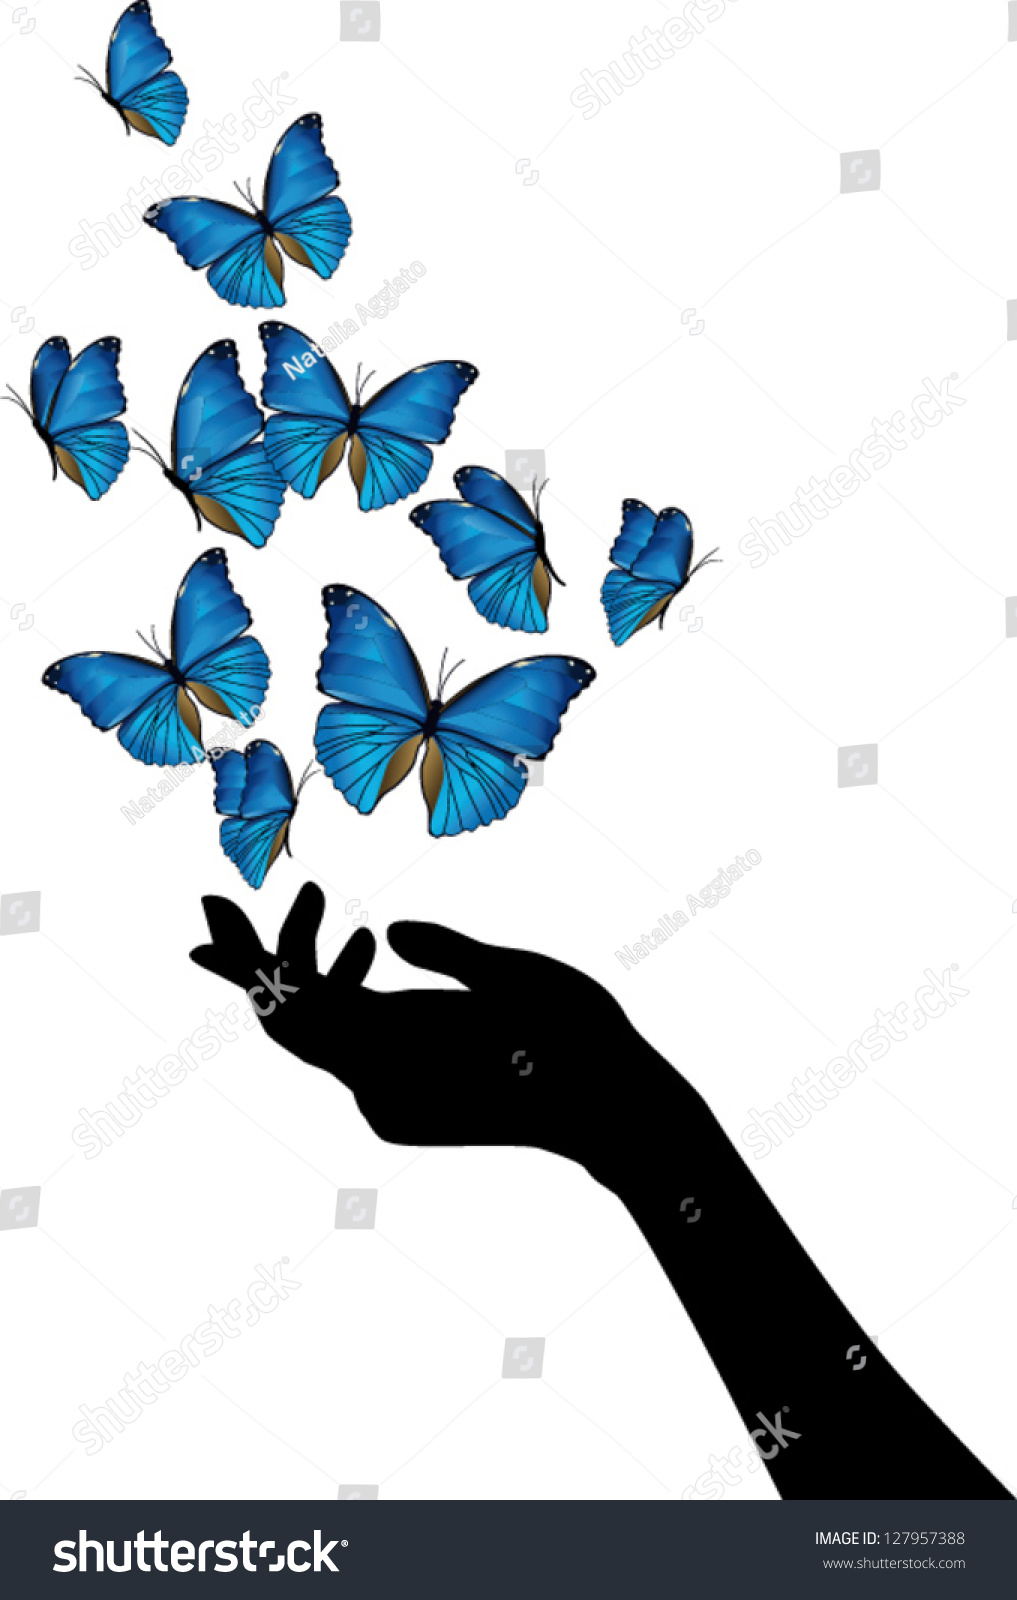 Stock Vector Hand With Blue Butterflies Flying further Stock Illustration Vector Border Artwork Line Drawings Floral Ornament Advertising Discounts Black Friday Christmas Discounts Flowers Image63532848 further Drawing Tips together with Pencil Drawings together with Stock Photos Set Stick Figure People Pictograms Representing Man Basic Posture Gesture Image30112463. on gesture drawings of animals